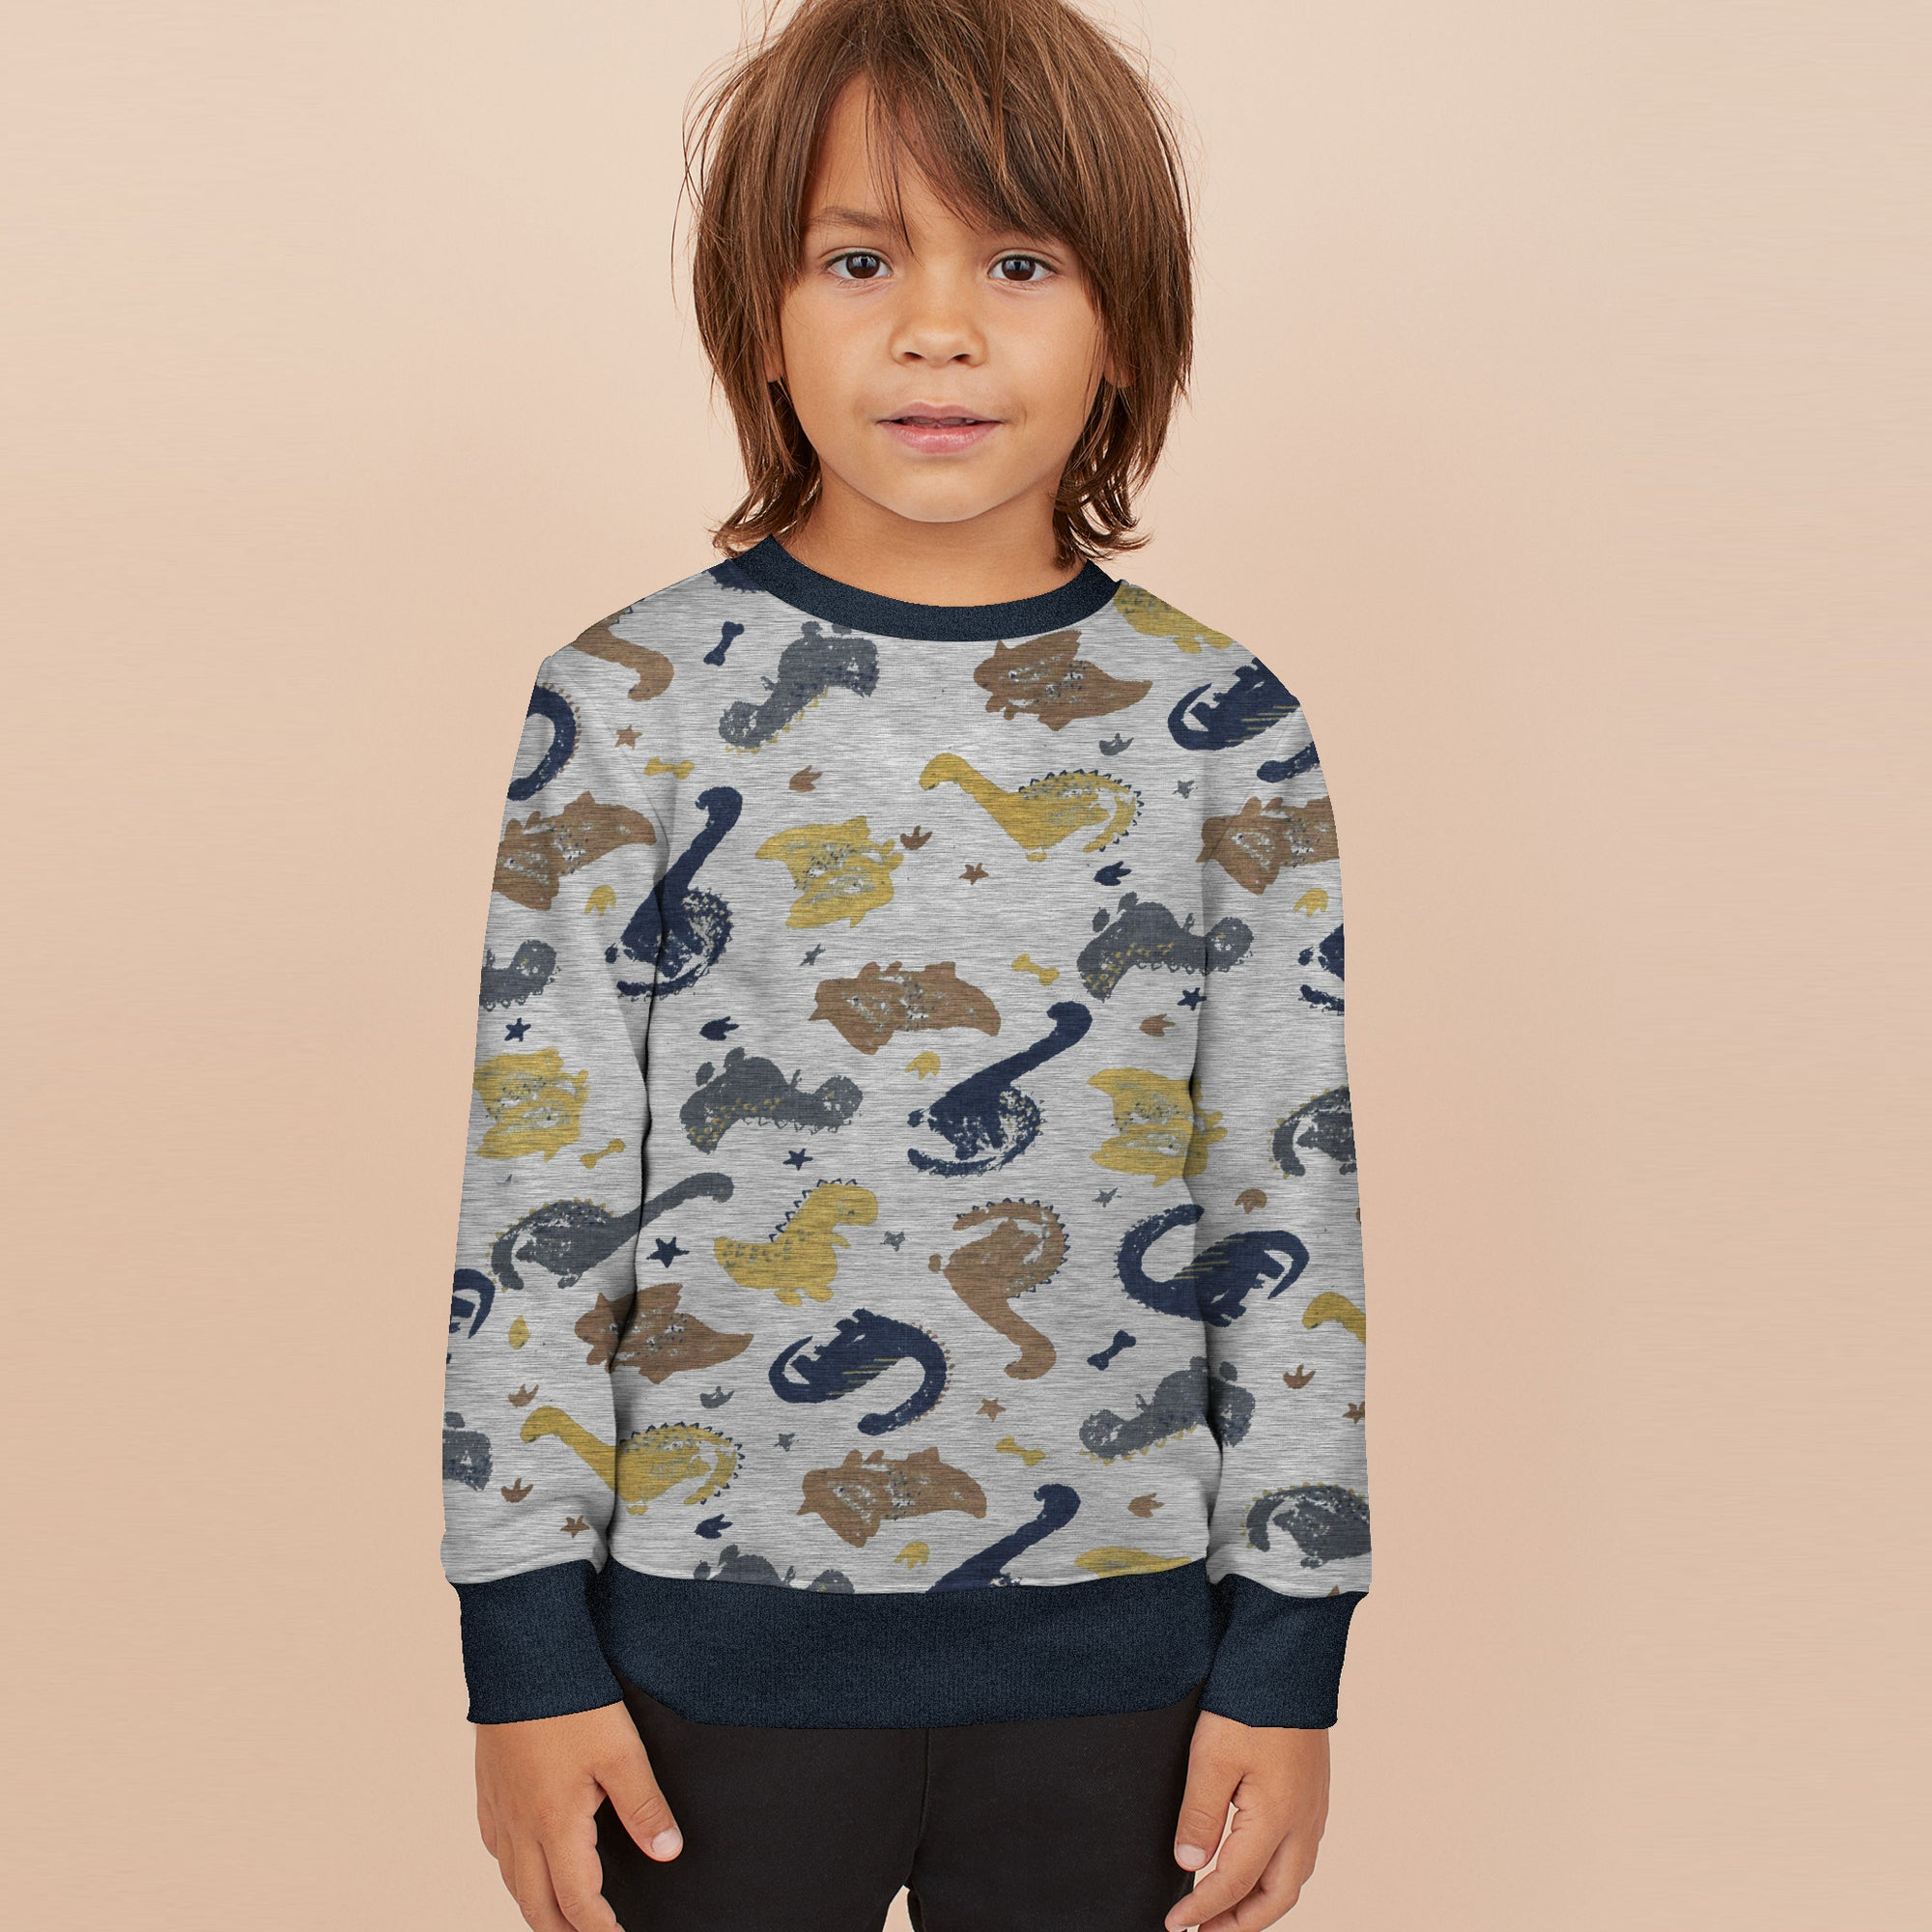 Tommy Hilfiger Terry Fleece Crew Neck Sweatshirt For Kids-Grey Melange with Animal Print-BE10713